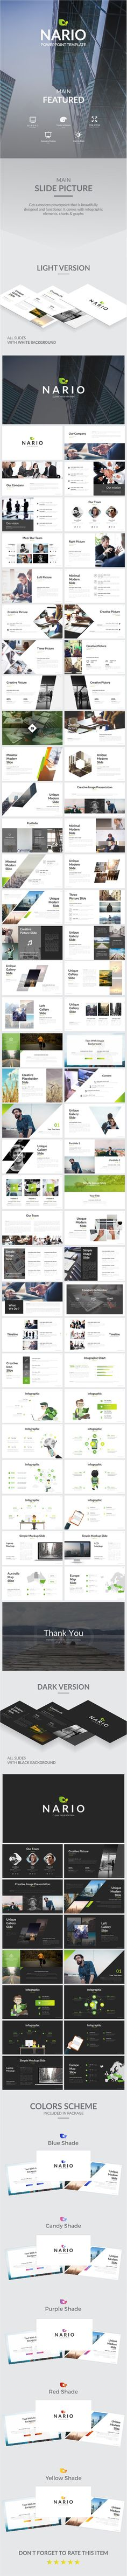 Social Nova Powerpoint Template  Business Powerpoint Templates